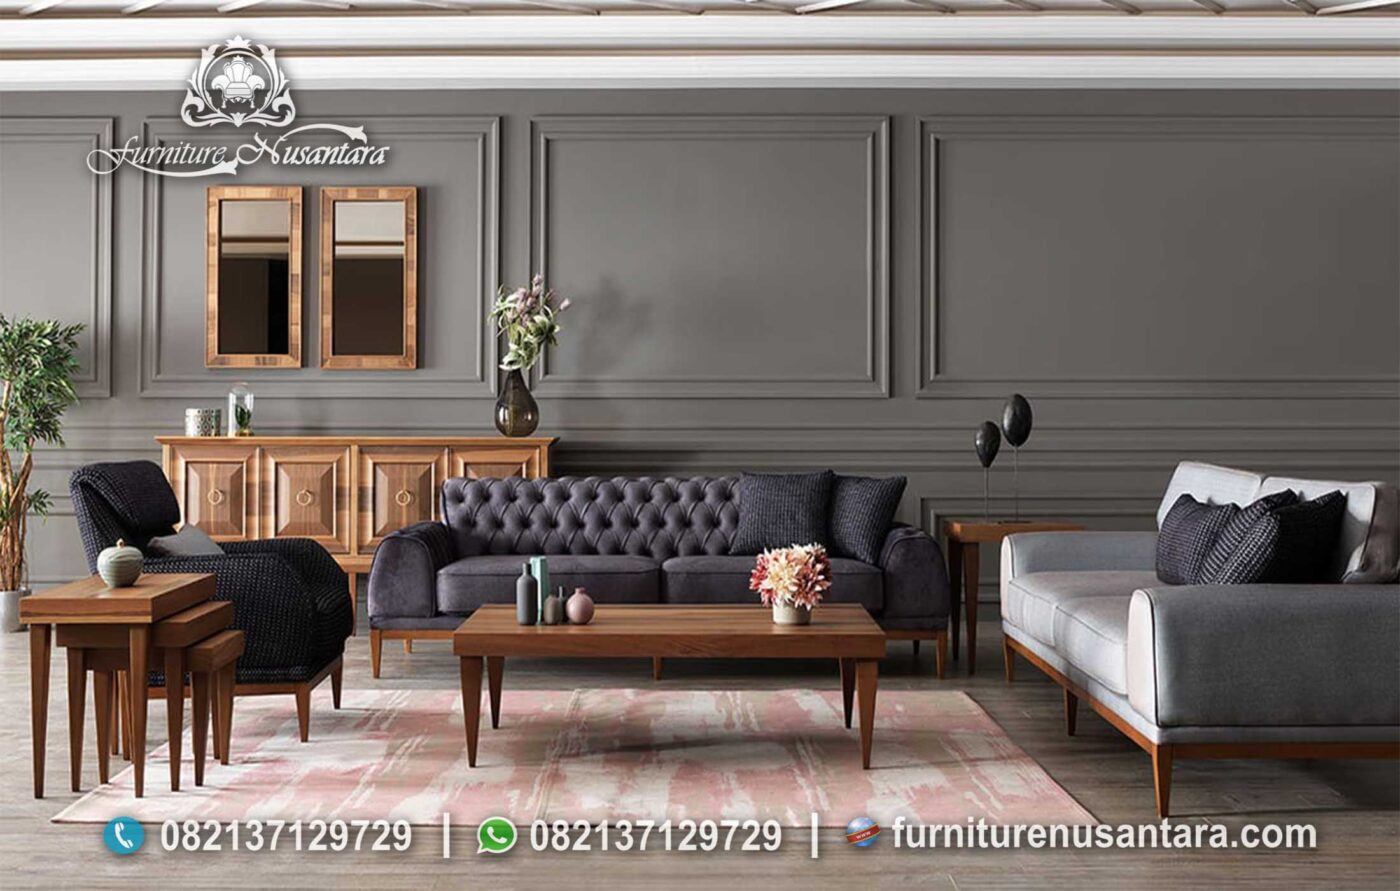 Jual Set Sofa Minimalis Kayu Stylist ST-66, Furniture Nusantara